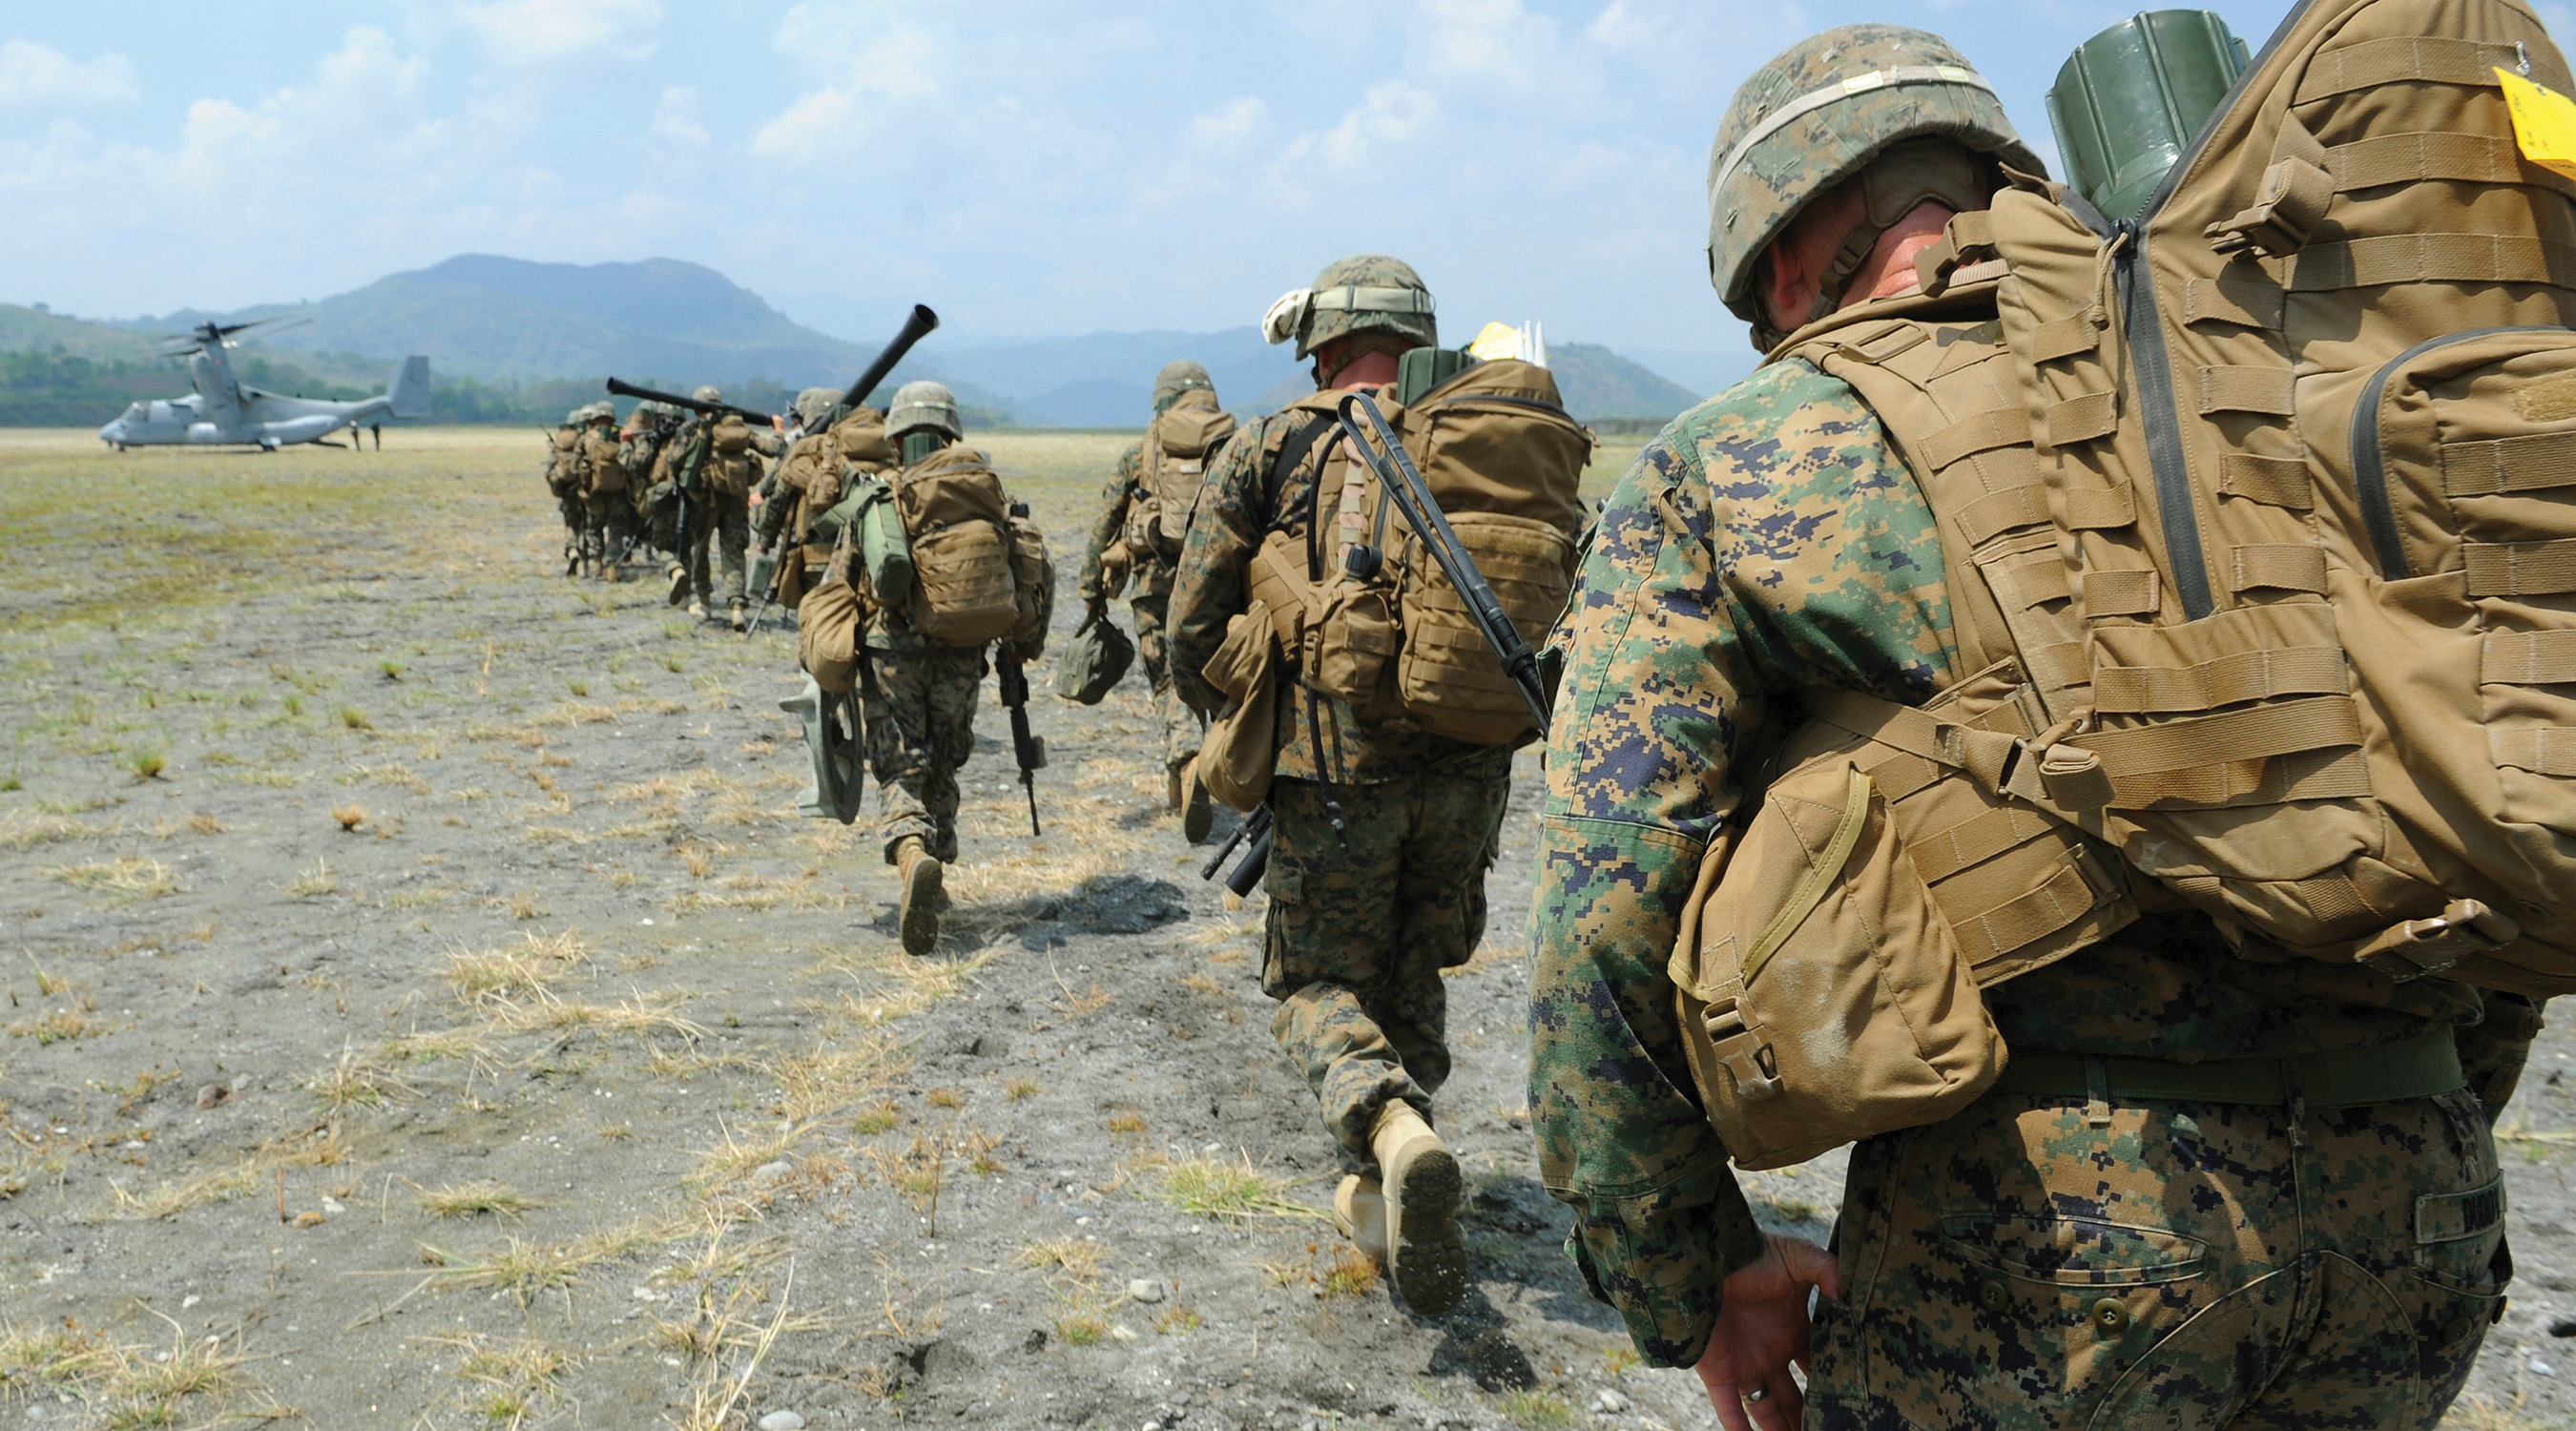 Philippine and U.S. Marines participating as part of Exercise Balikatan 2013. US Marine Corps Photo